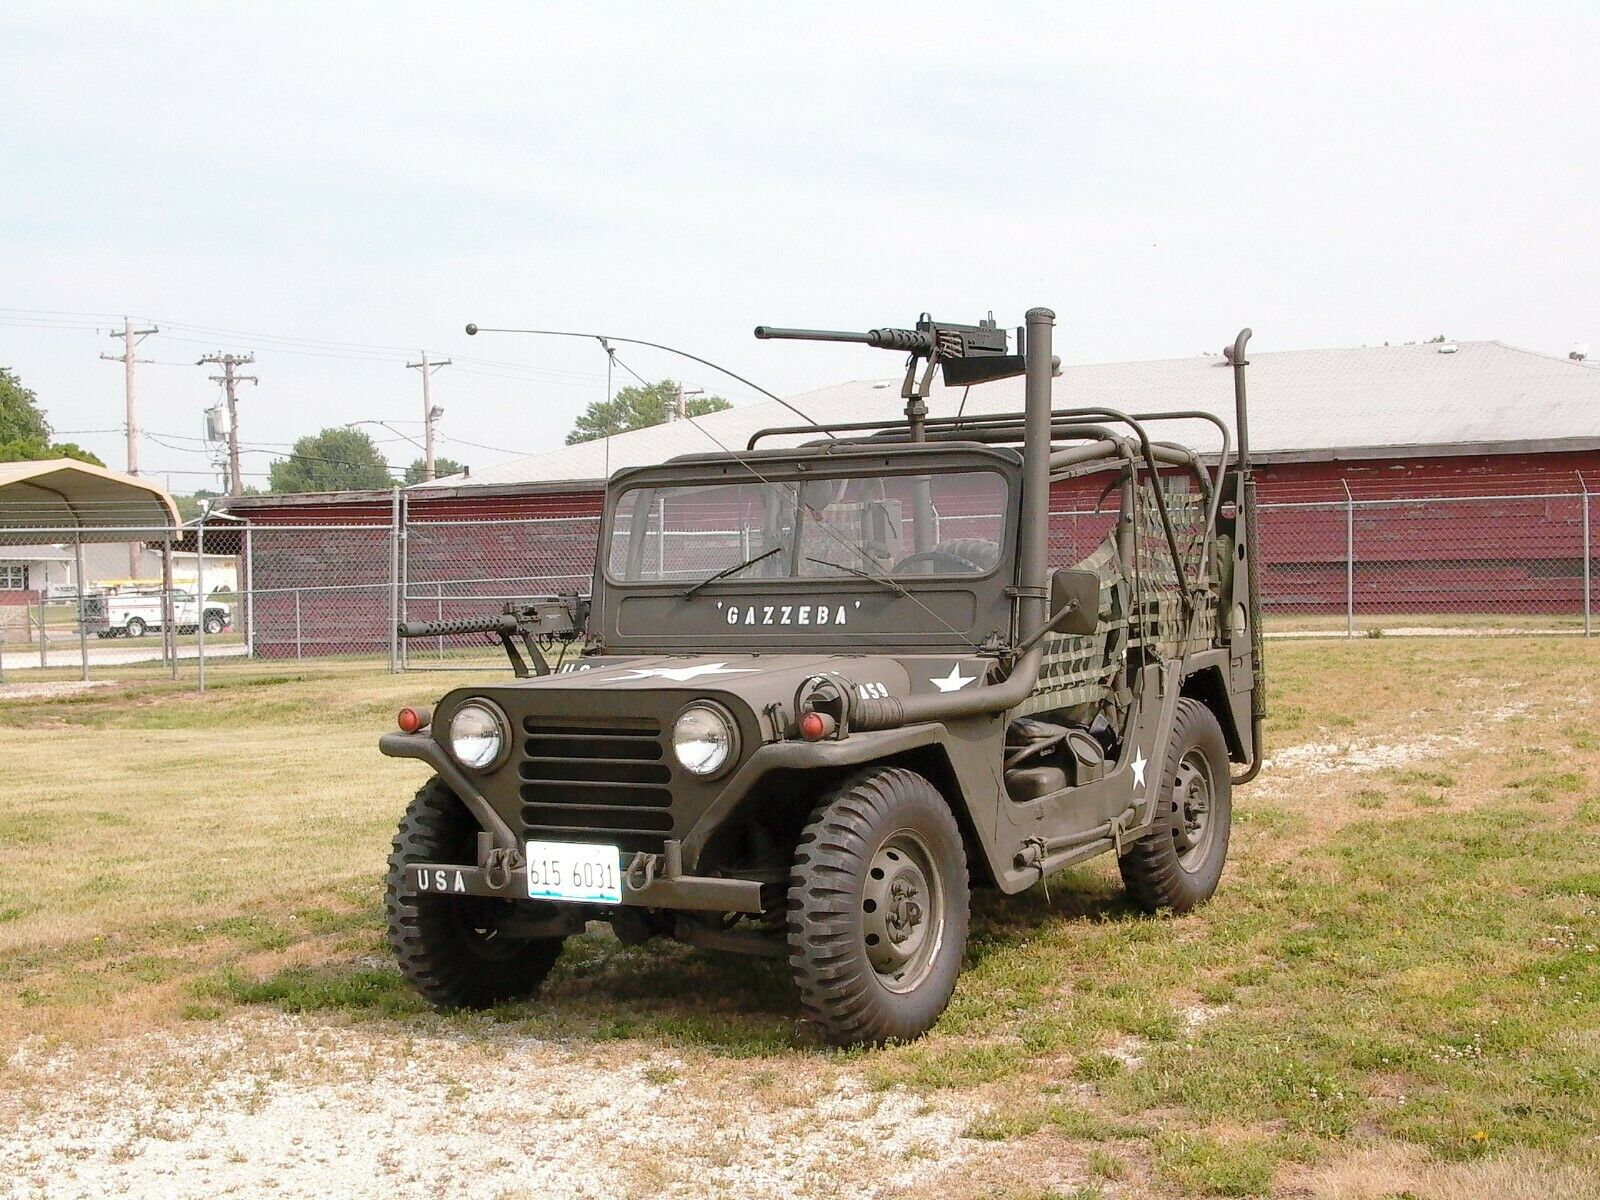 repaired and upgraded 1966 Ford M151 A1/a2 Vietnam Era Jeep military